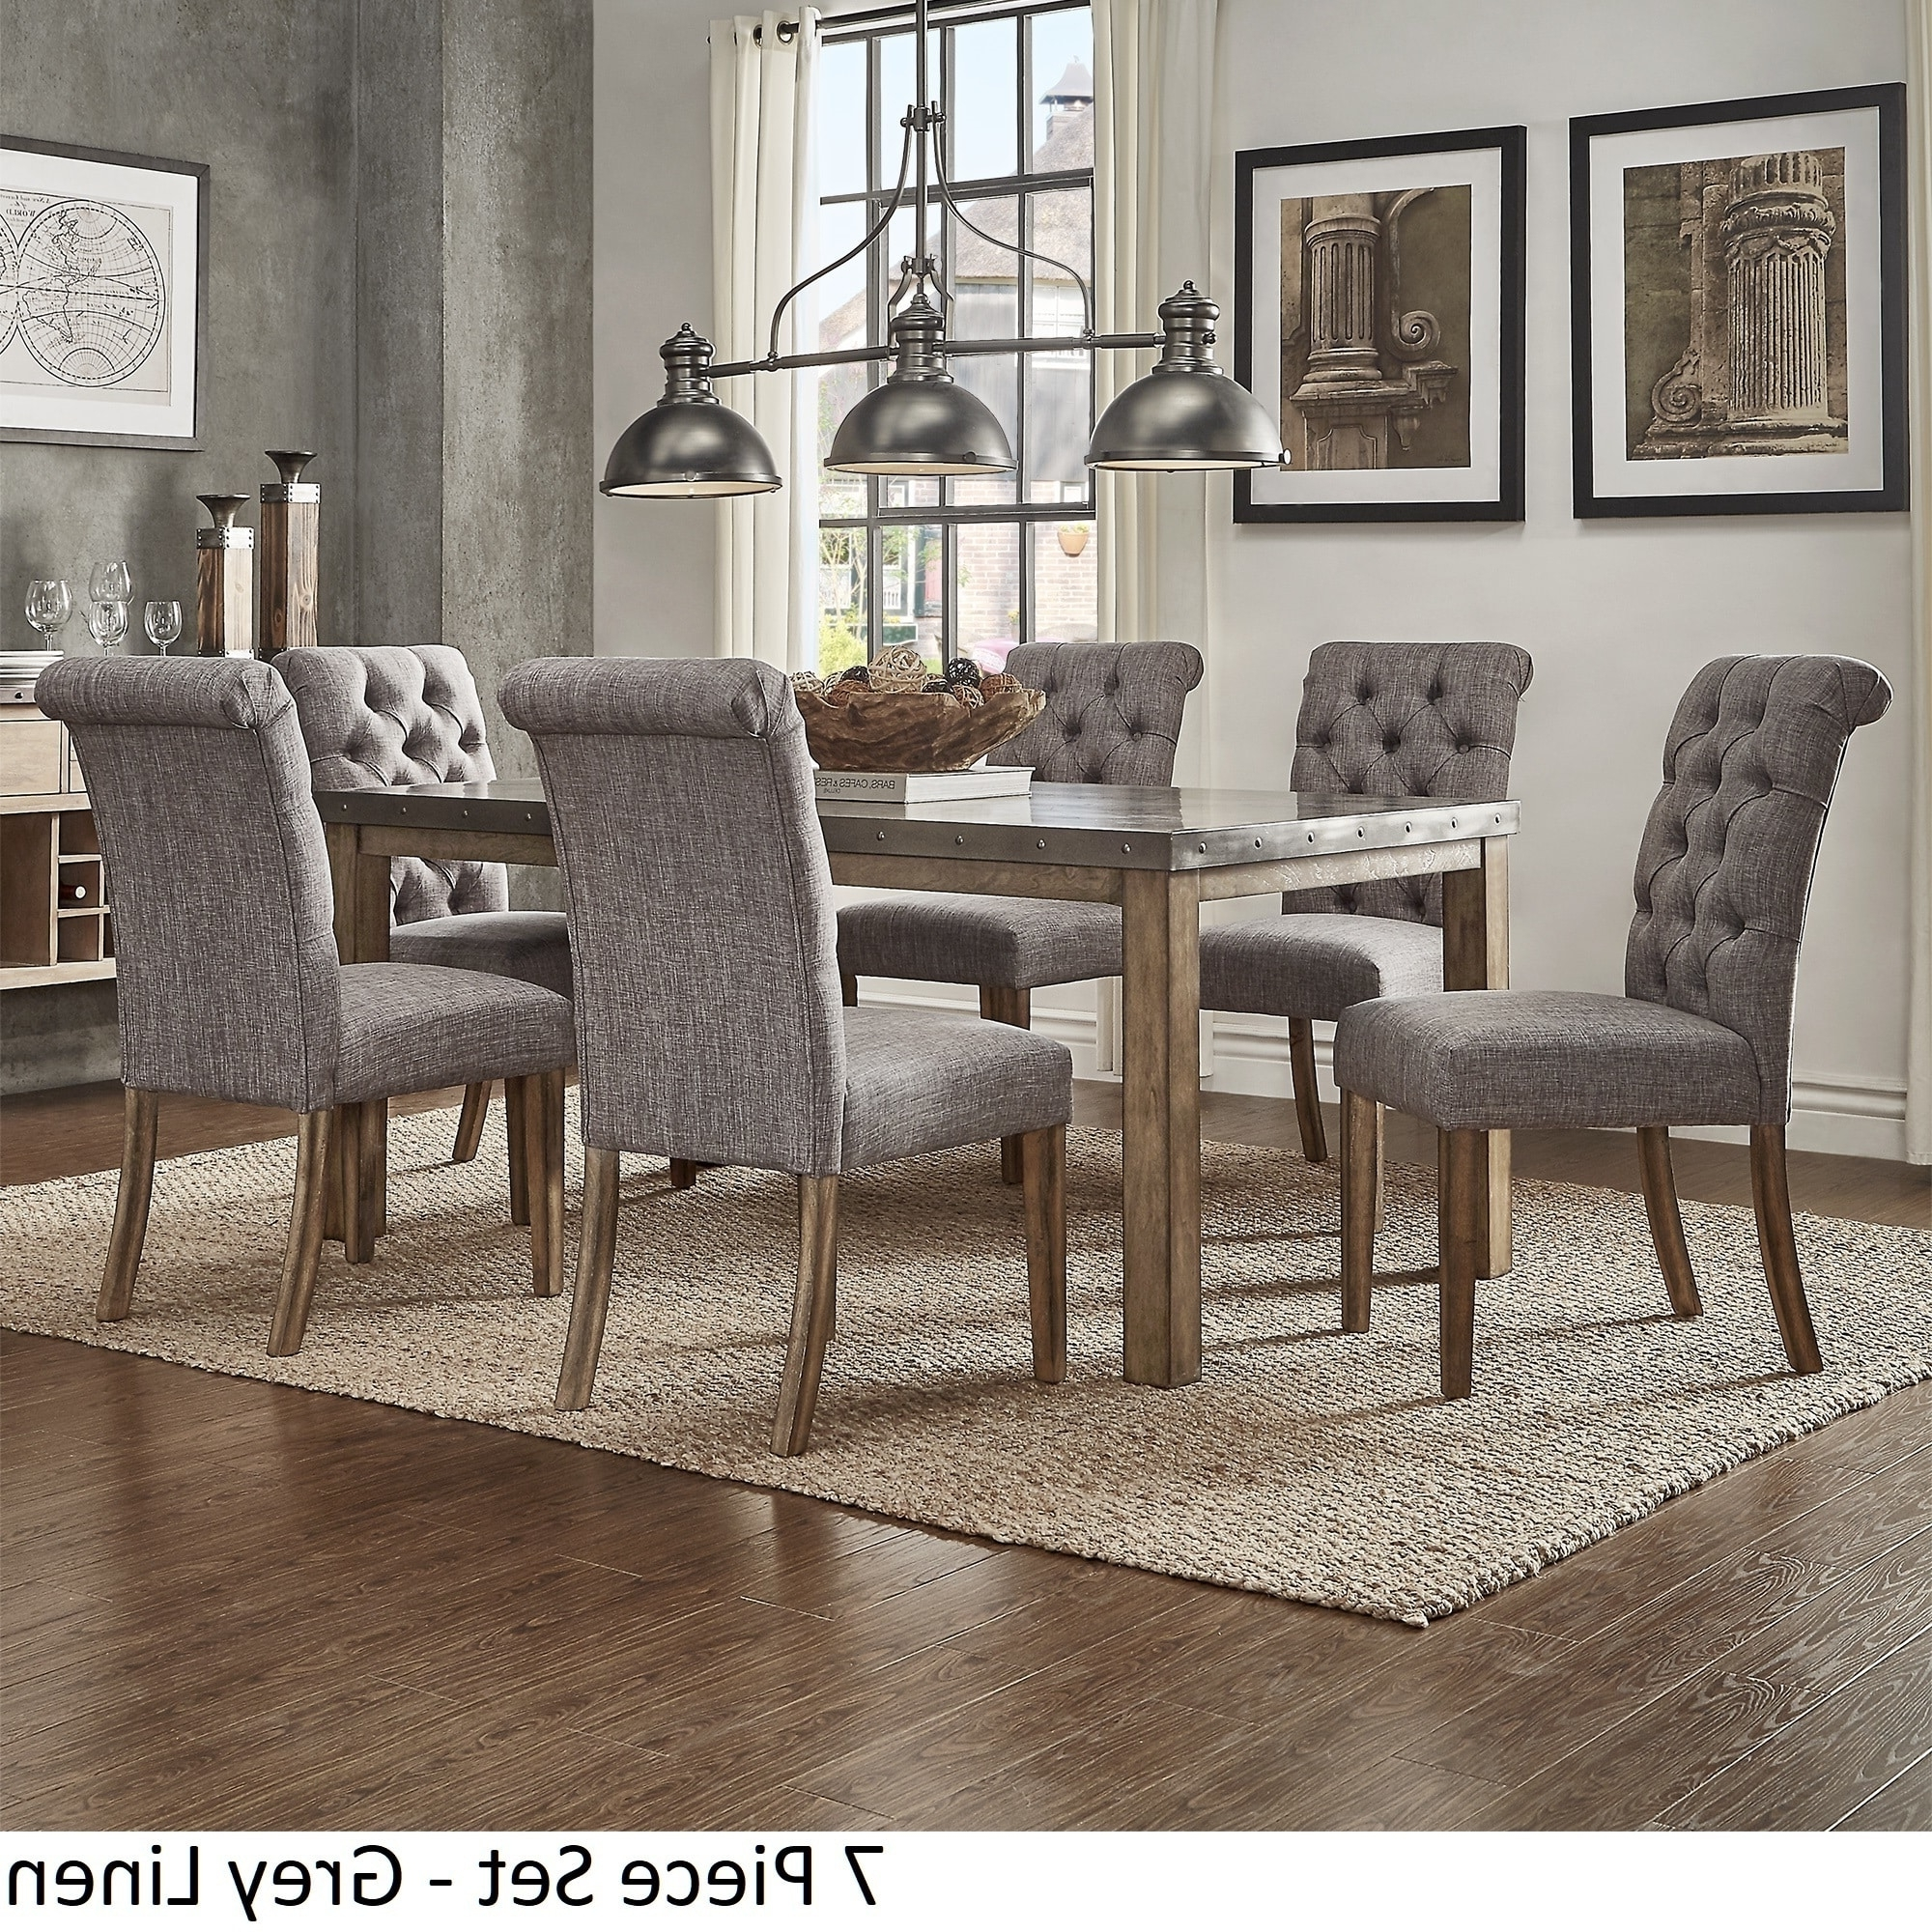 Preferred Candice Ii 7 Piece Extension Rectangle Dining Sets In Cassidy Stainless Steel Top Rectangle Dining Table Setinspire Q (View 8 of 25)